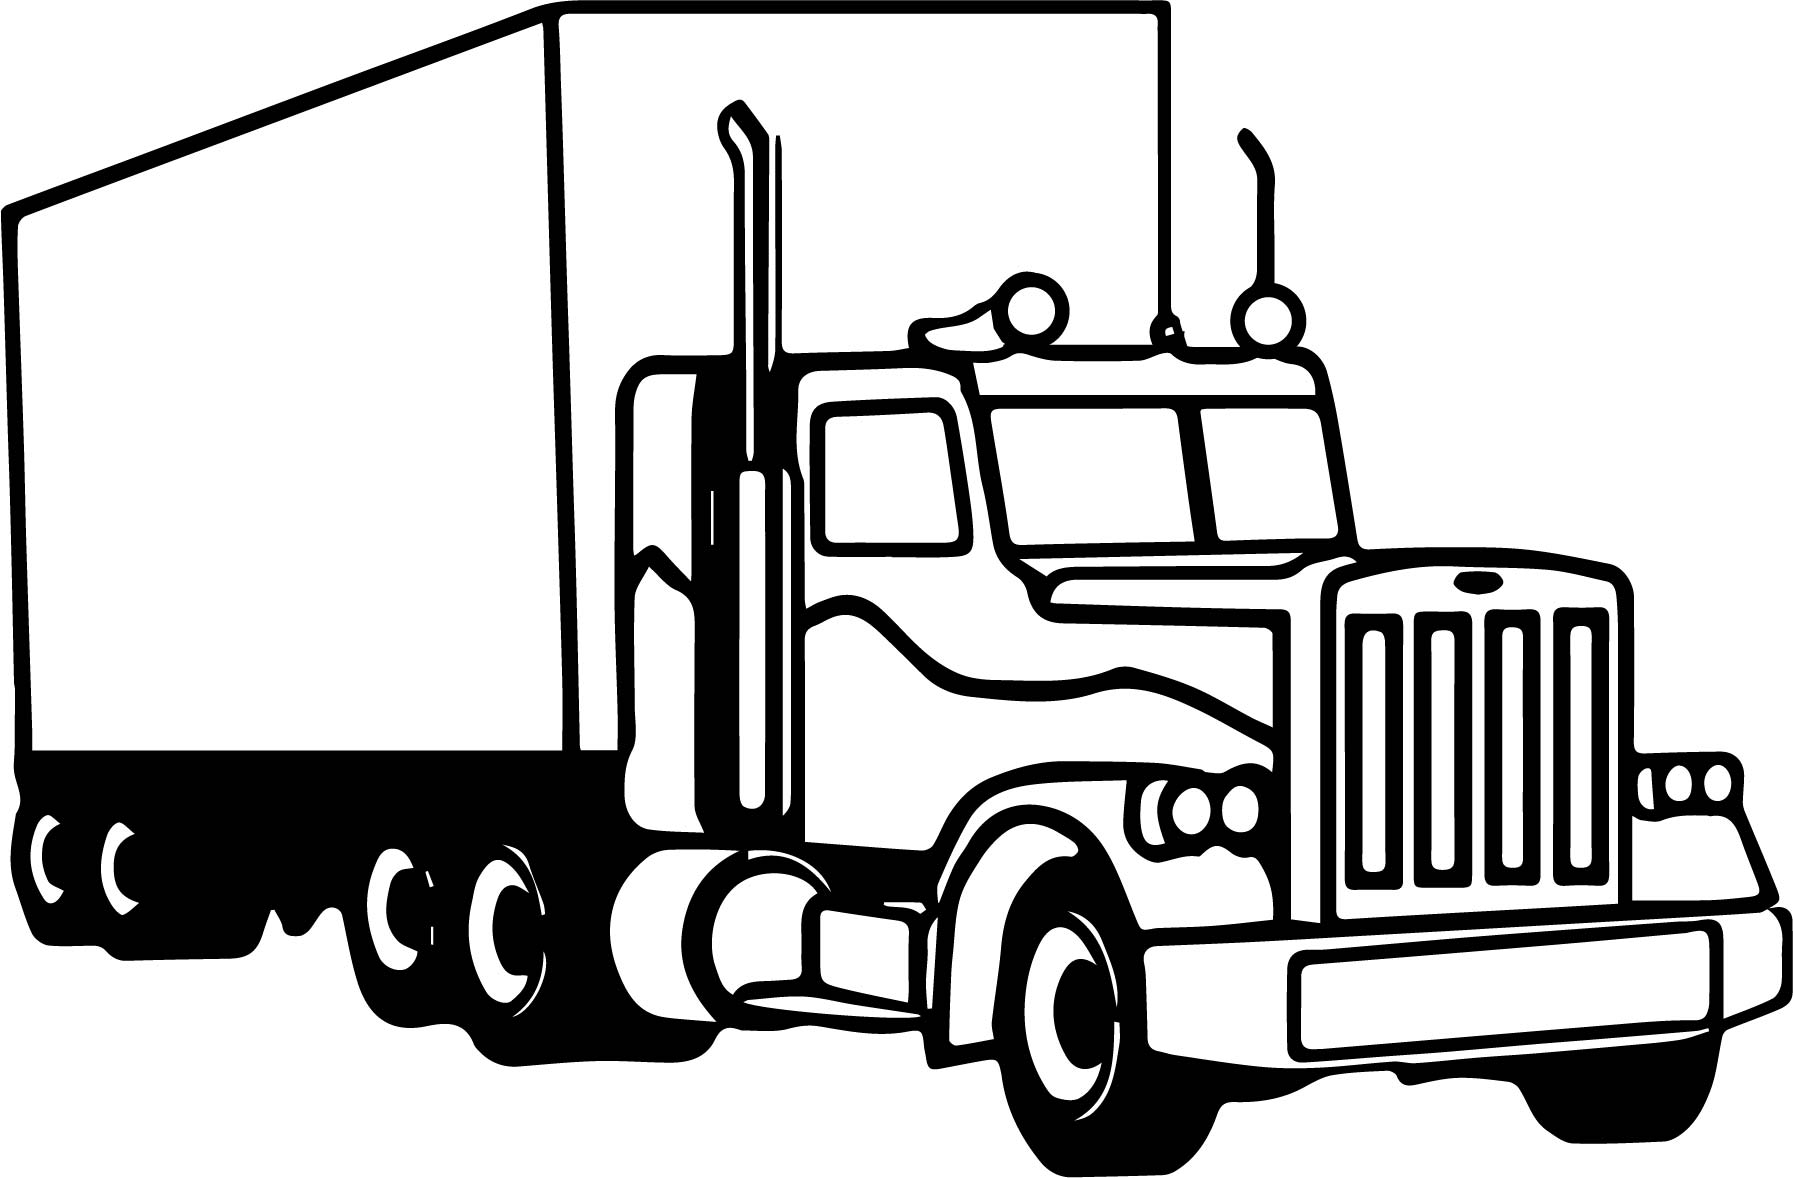 Coloring pictures of cars truck tractors - Semi Truck Coloring Page